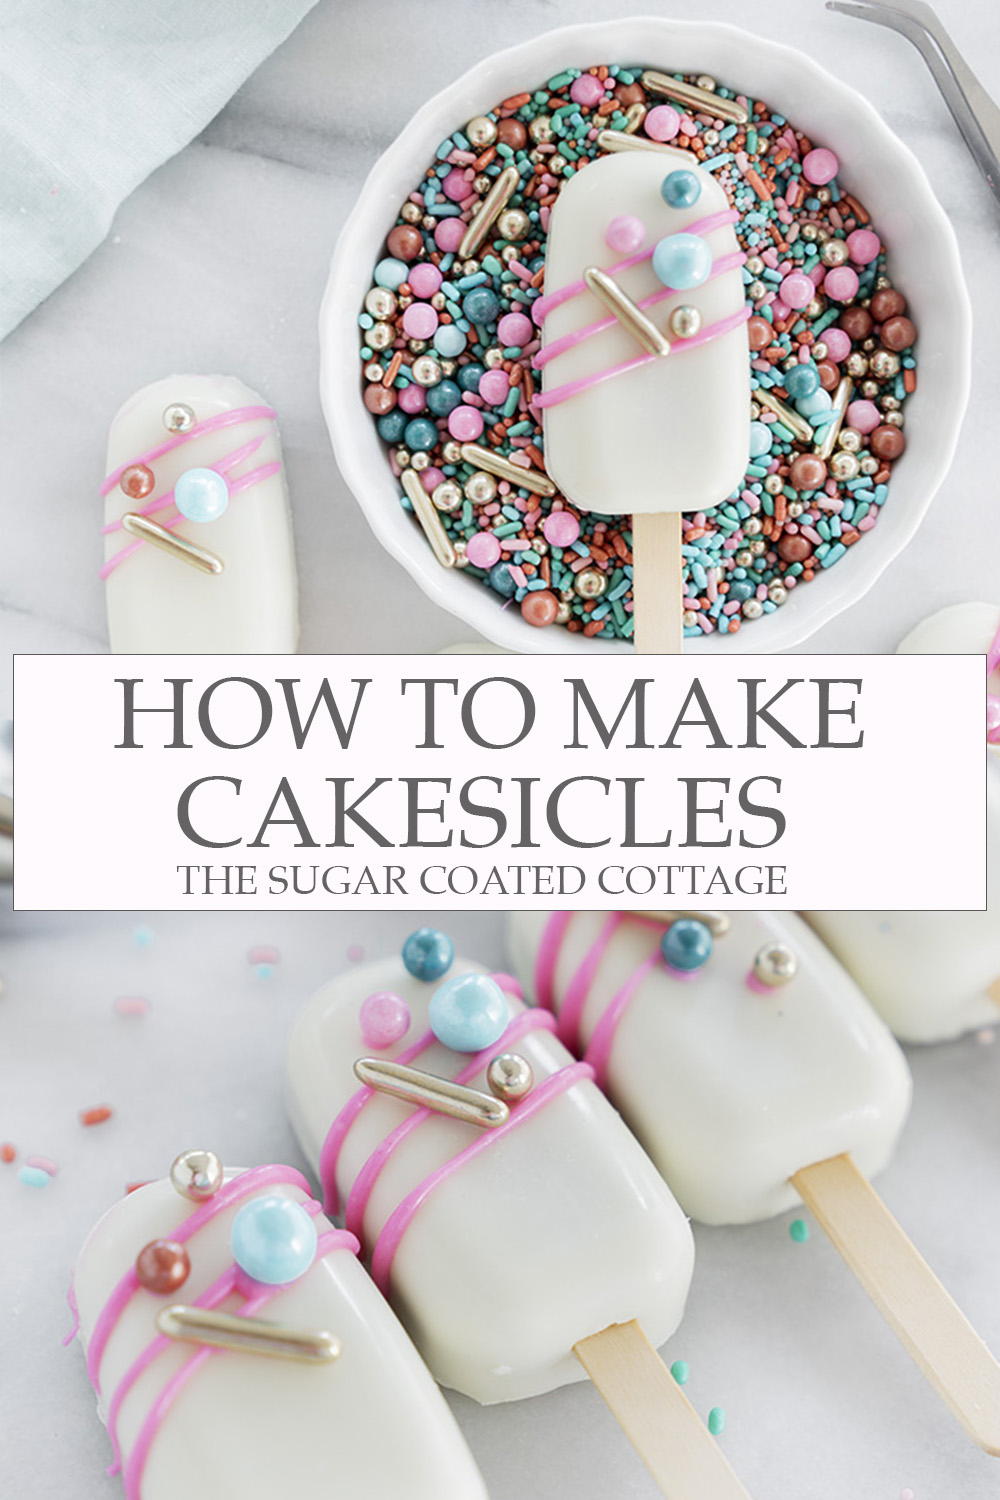 How To Make Cakesicles. A step by step guide to teach you how to make your own cakesicles. #cakesicles #cake #howto #wedding | thesugarcoatedcottage.com